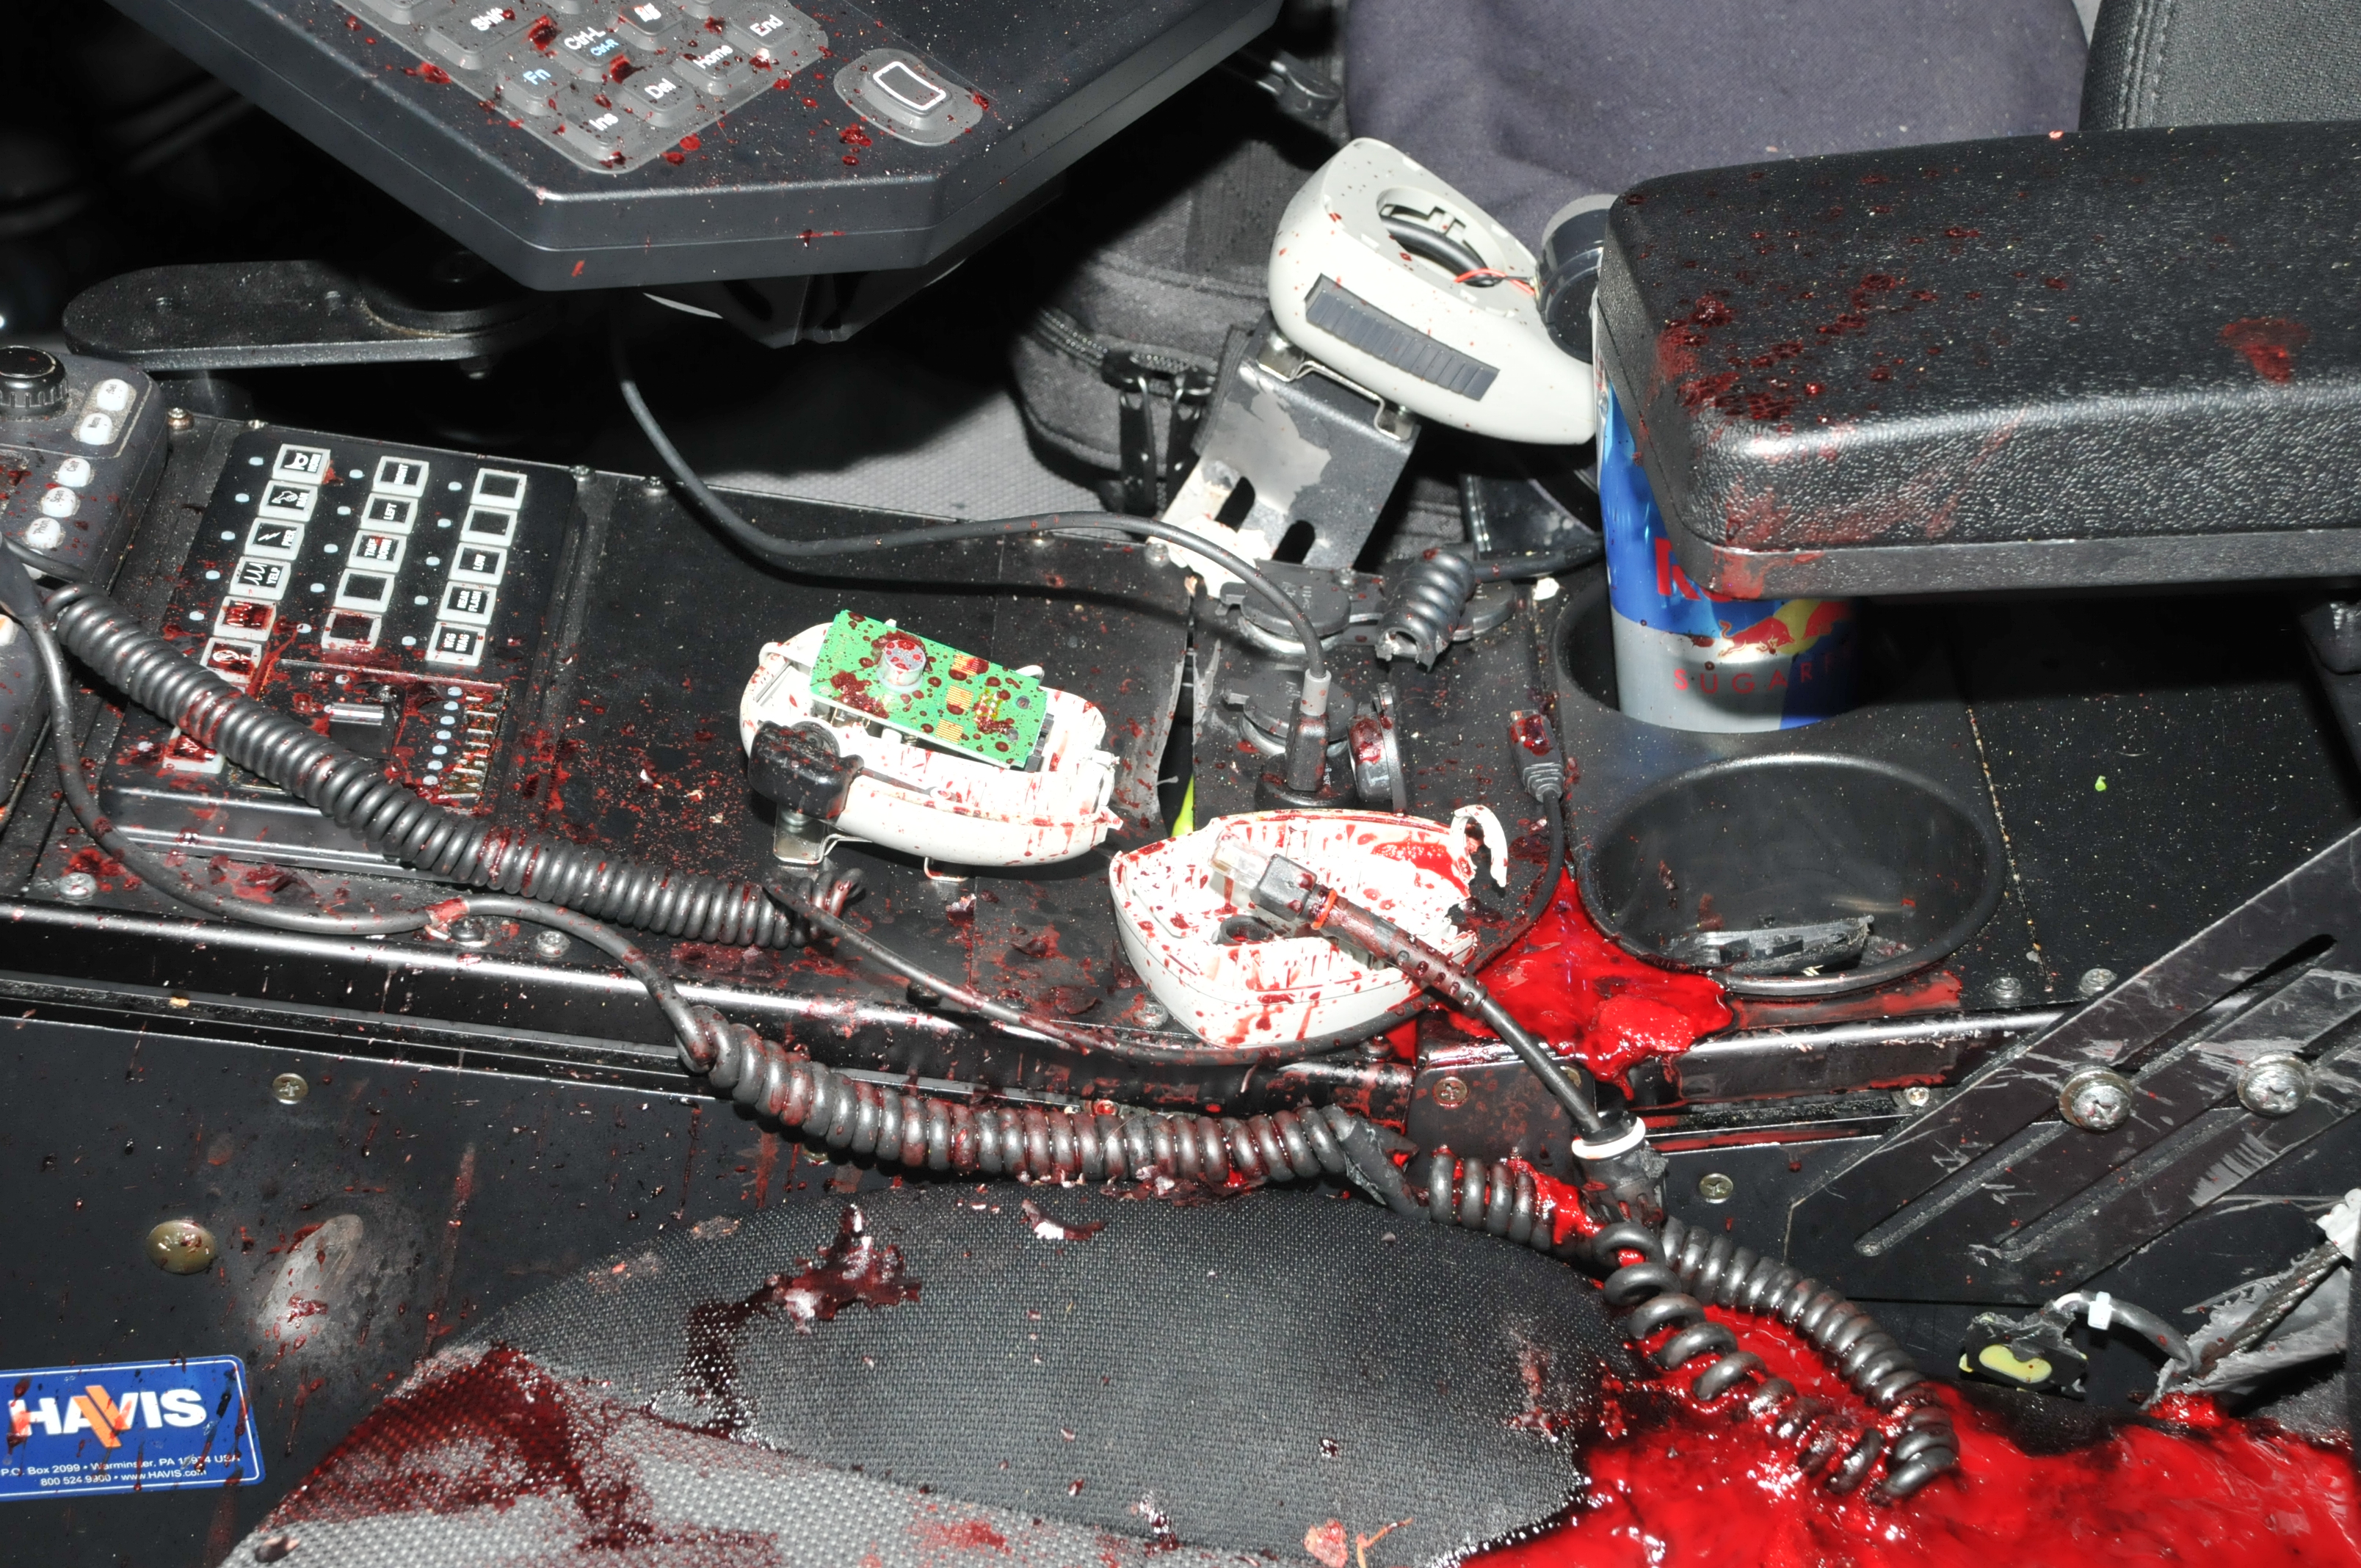 Boston Bombing Llama How To Wire An Electric Door Bell Ehow Uk Day 6 Exh 714 Photo Inside Colliers Vehicle From Back Passenger